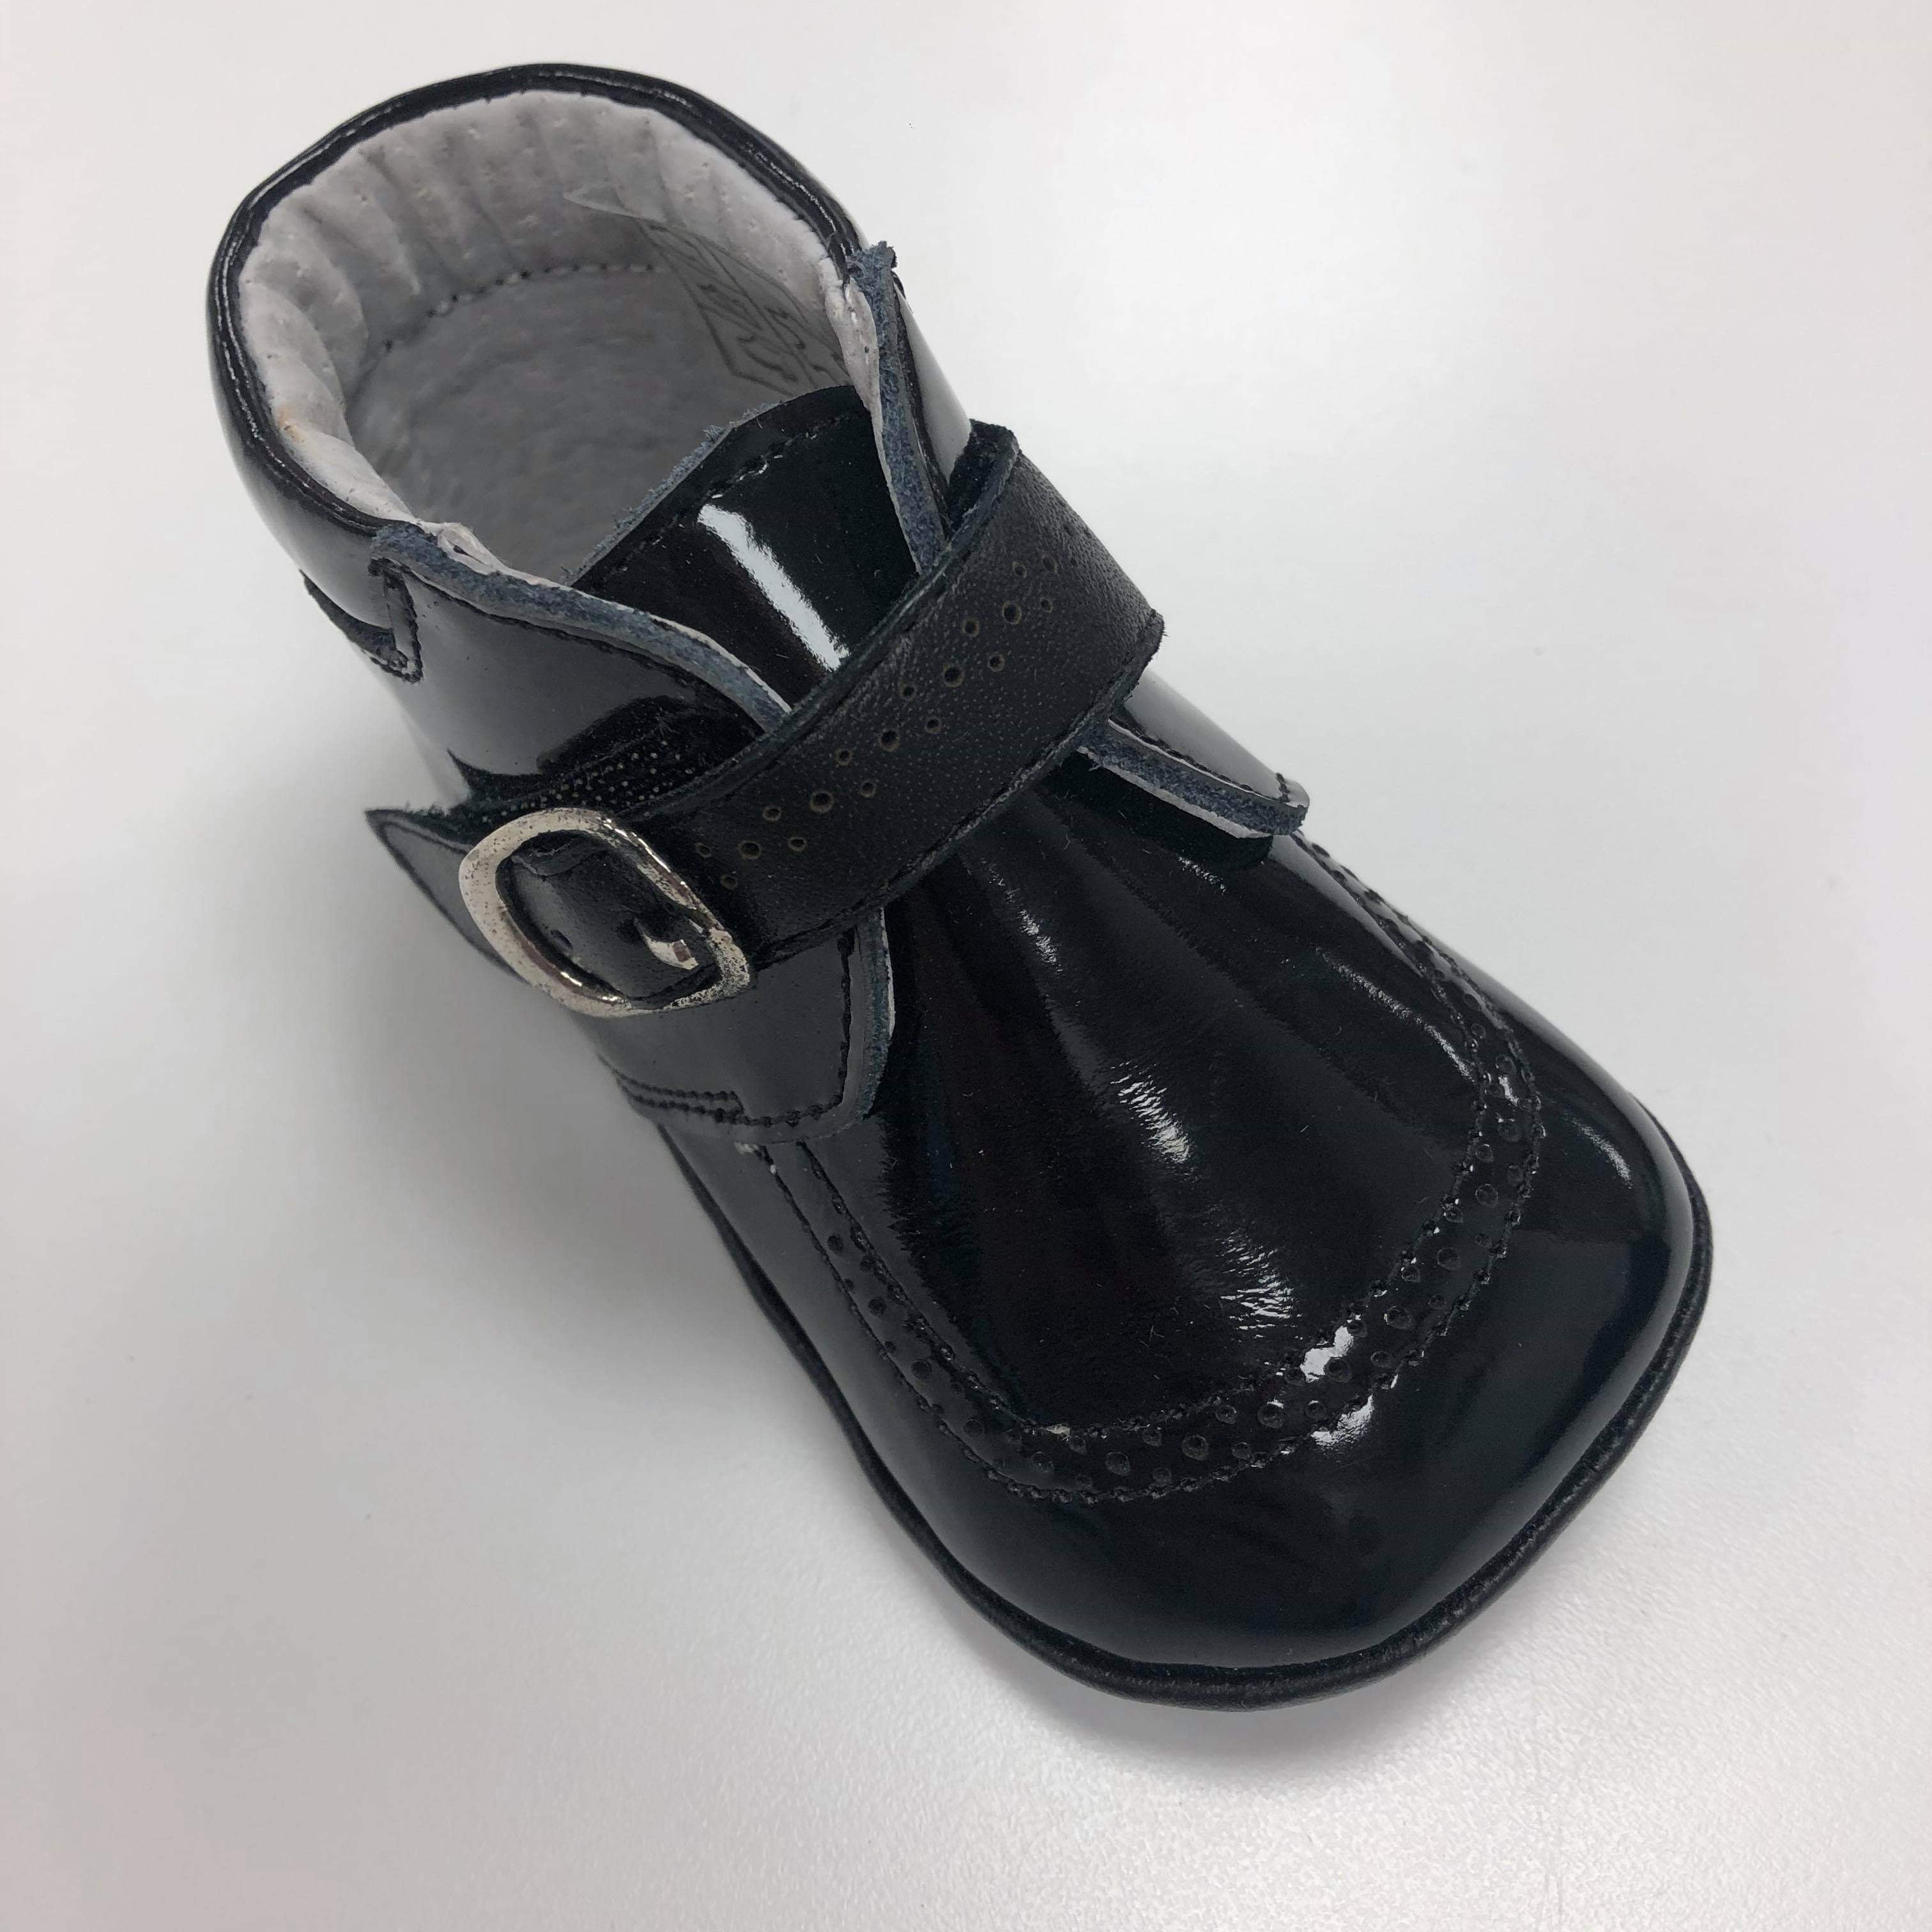 Leather Boys Soft Sole Pram Shoes Black